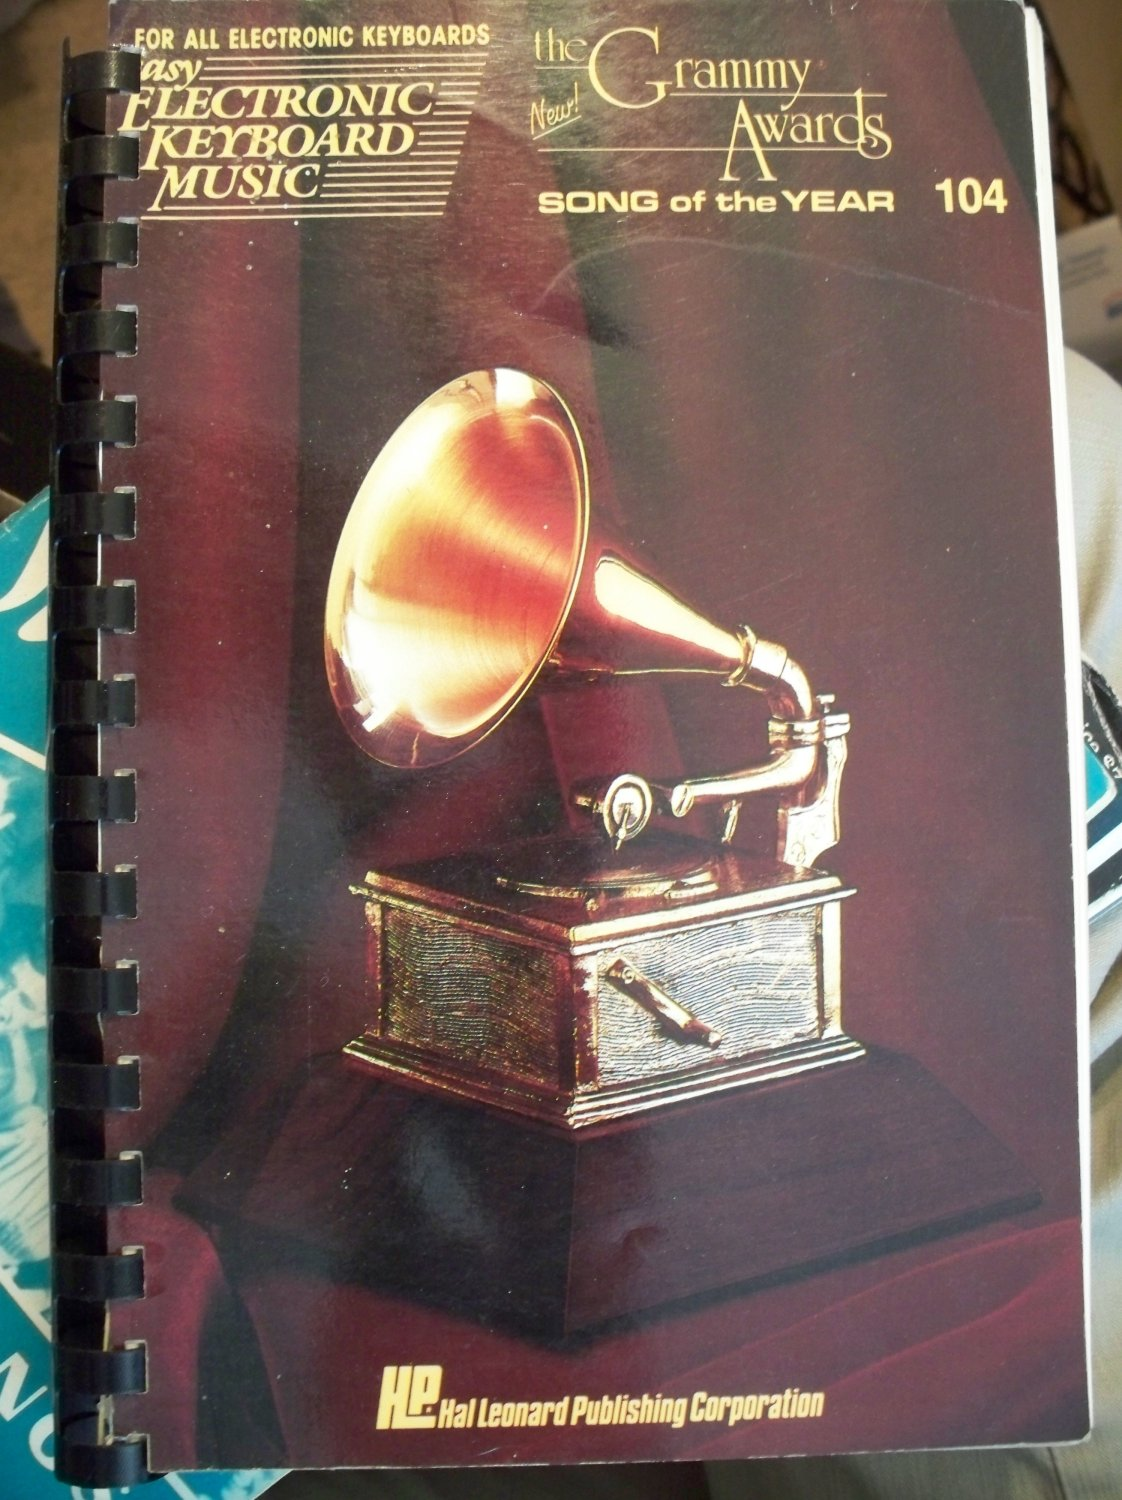 The Grammy Awards Song of the Year Easy Electronic Keyboard Music Book